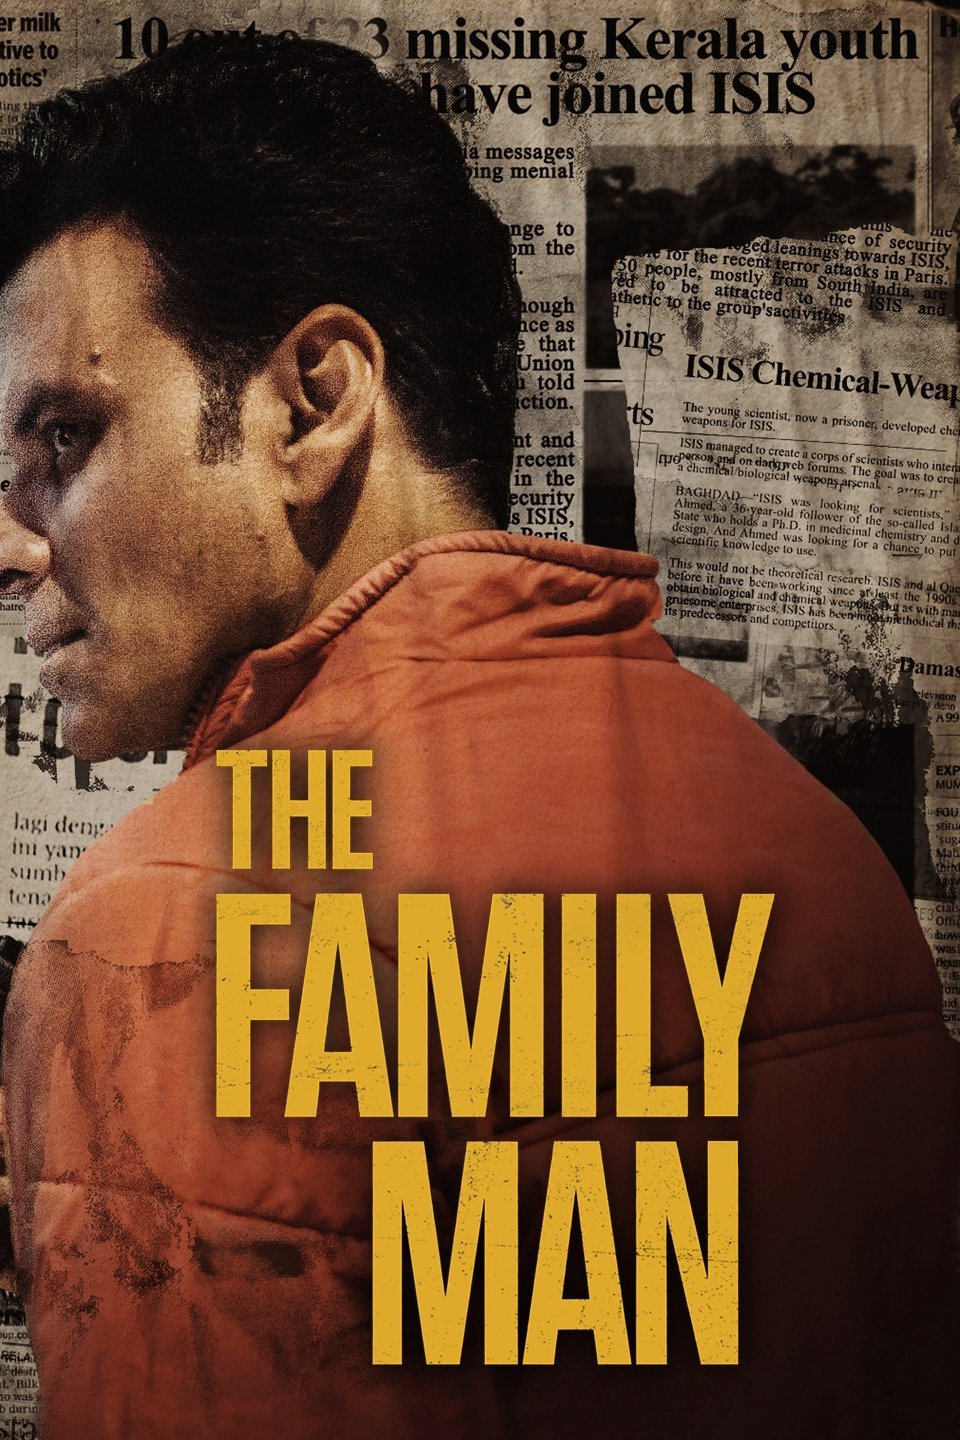 The Family Man S01 2019 All In One Hindi 720p & 480p WEBRip DD 5.1 ESubs x264 Download & Watchonline Gdrive